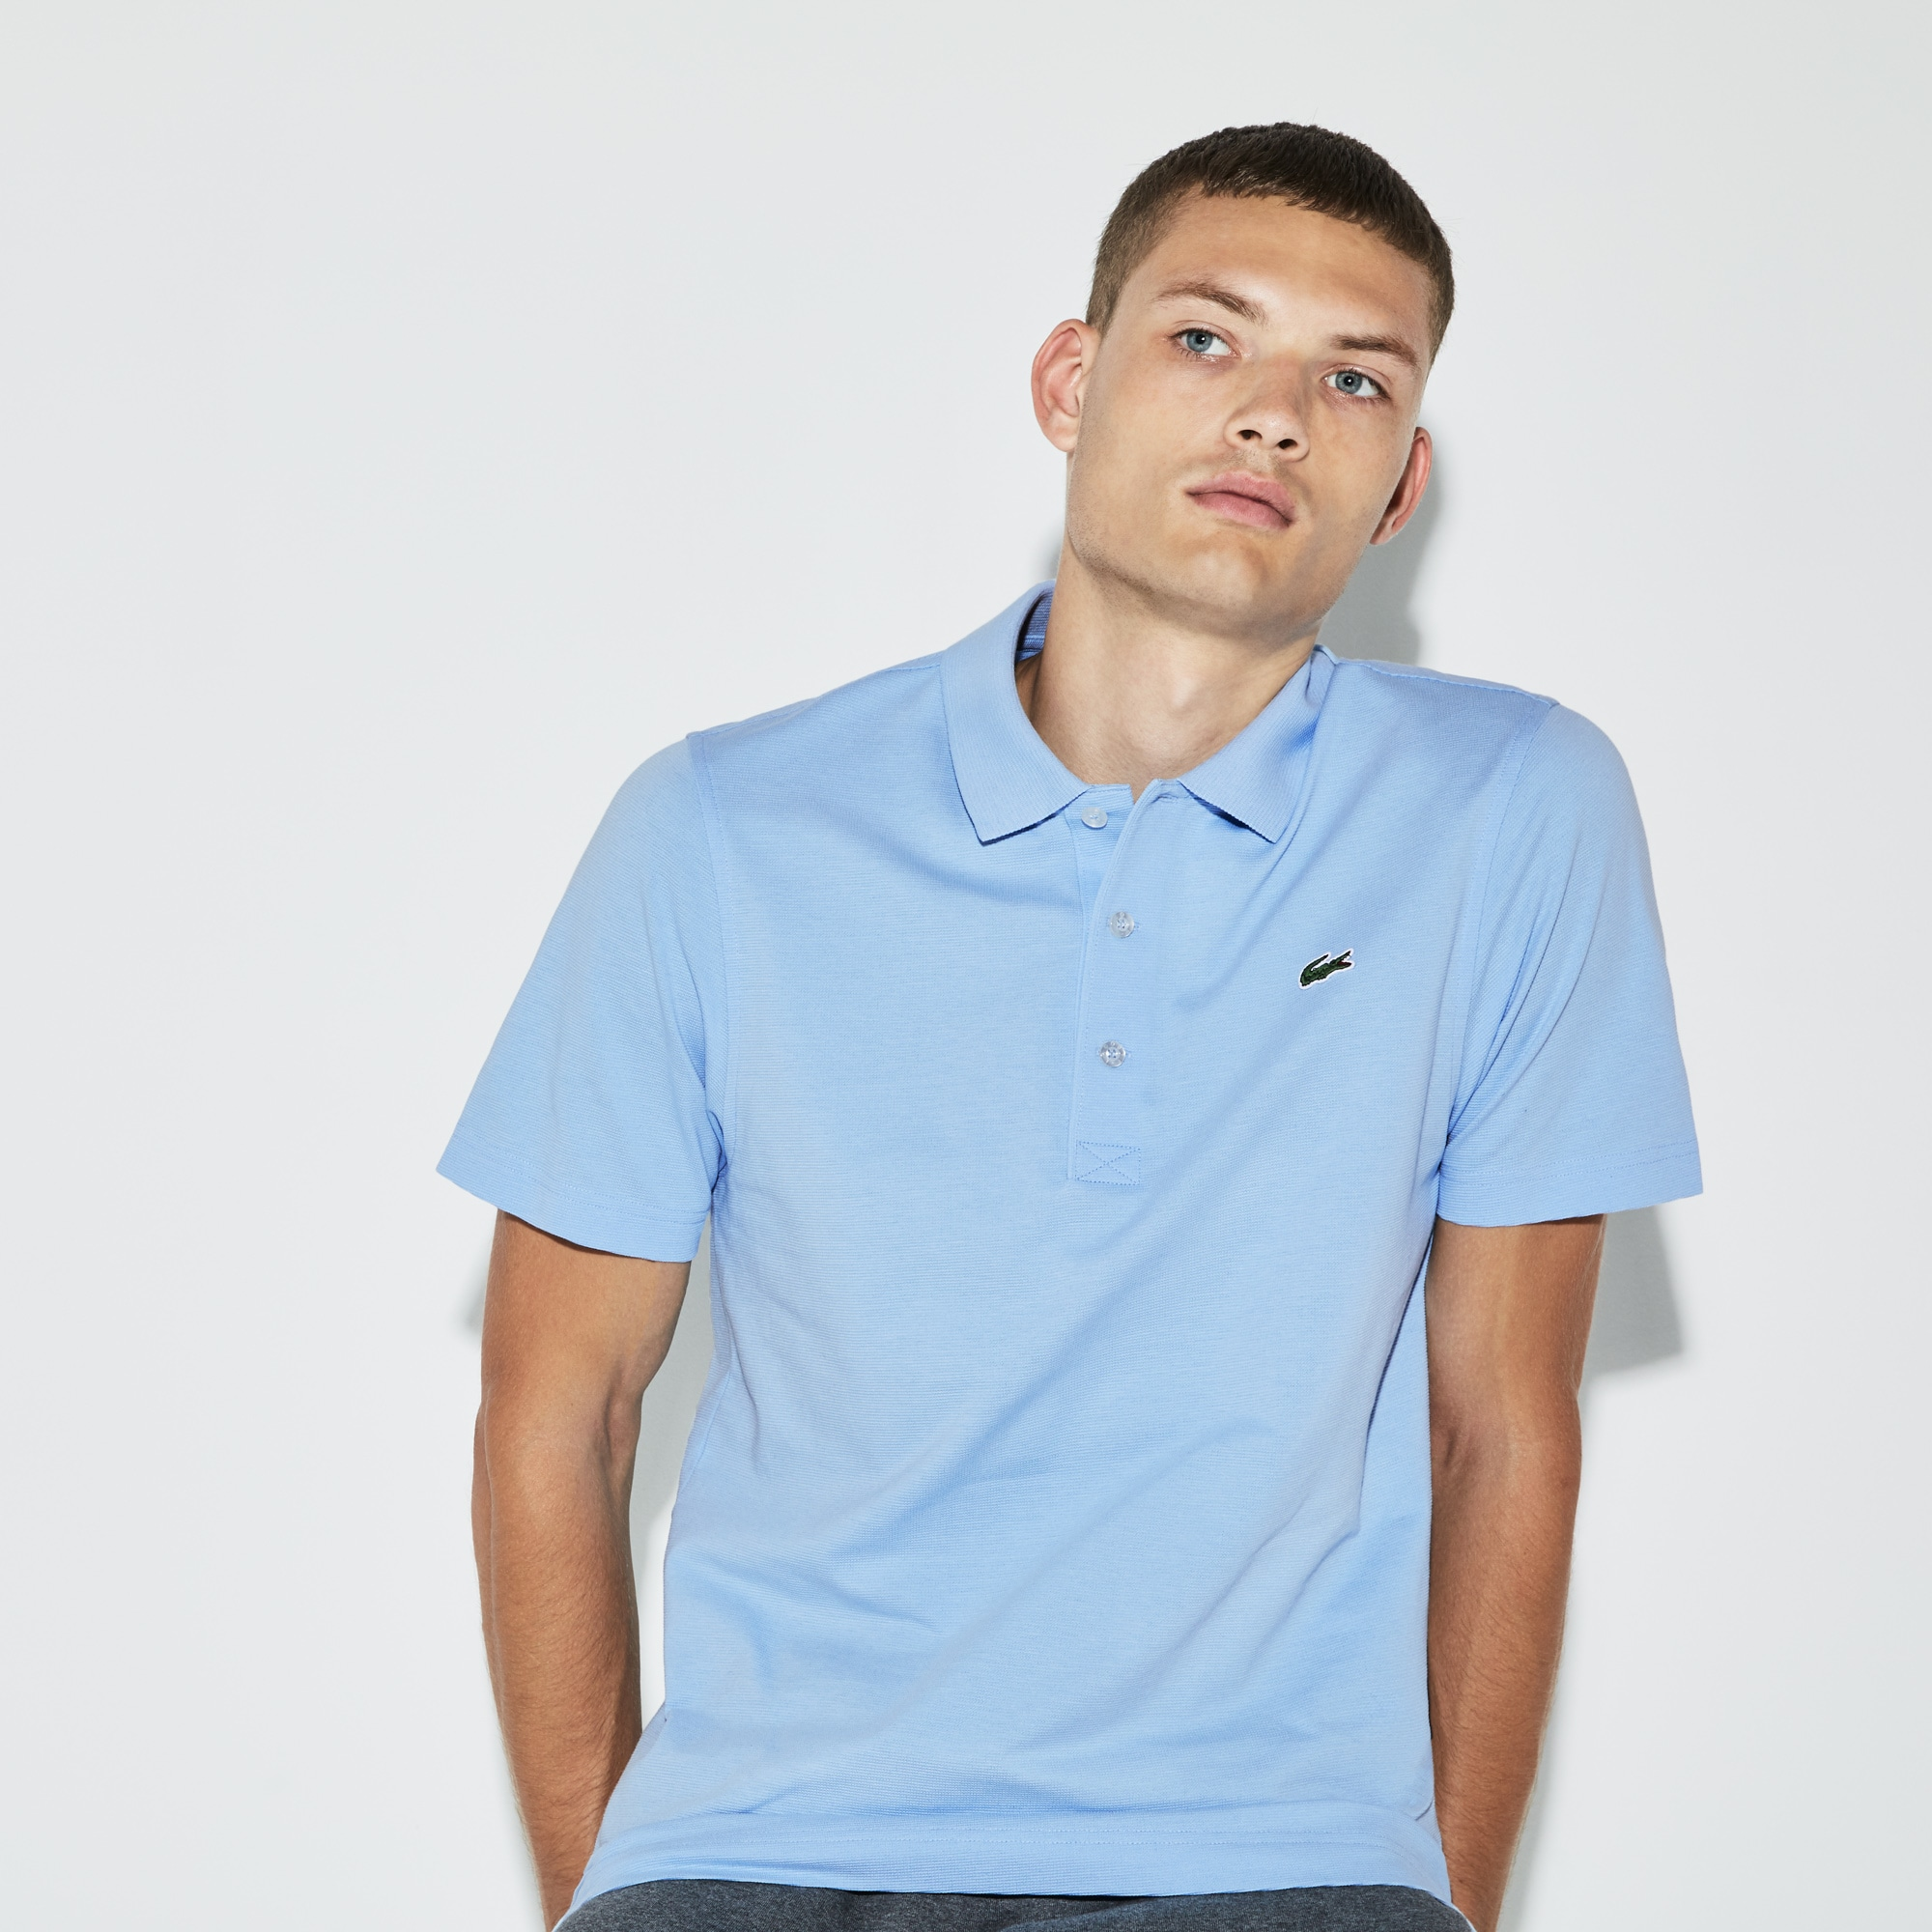 801b88edeb Polo regular fit Tennis Lacoste SPORT en maille ultra-légère ...